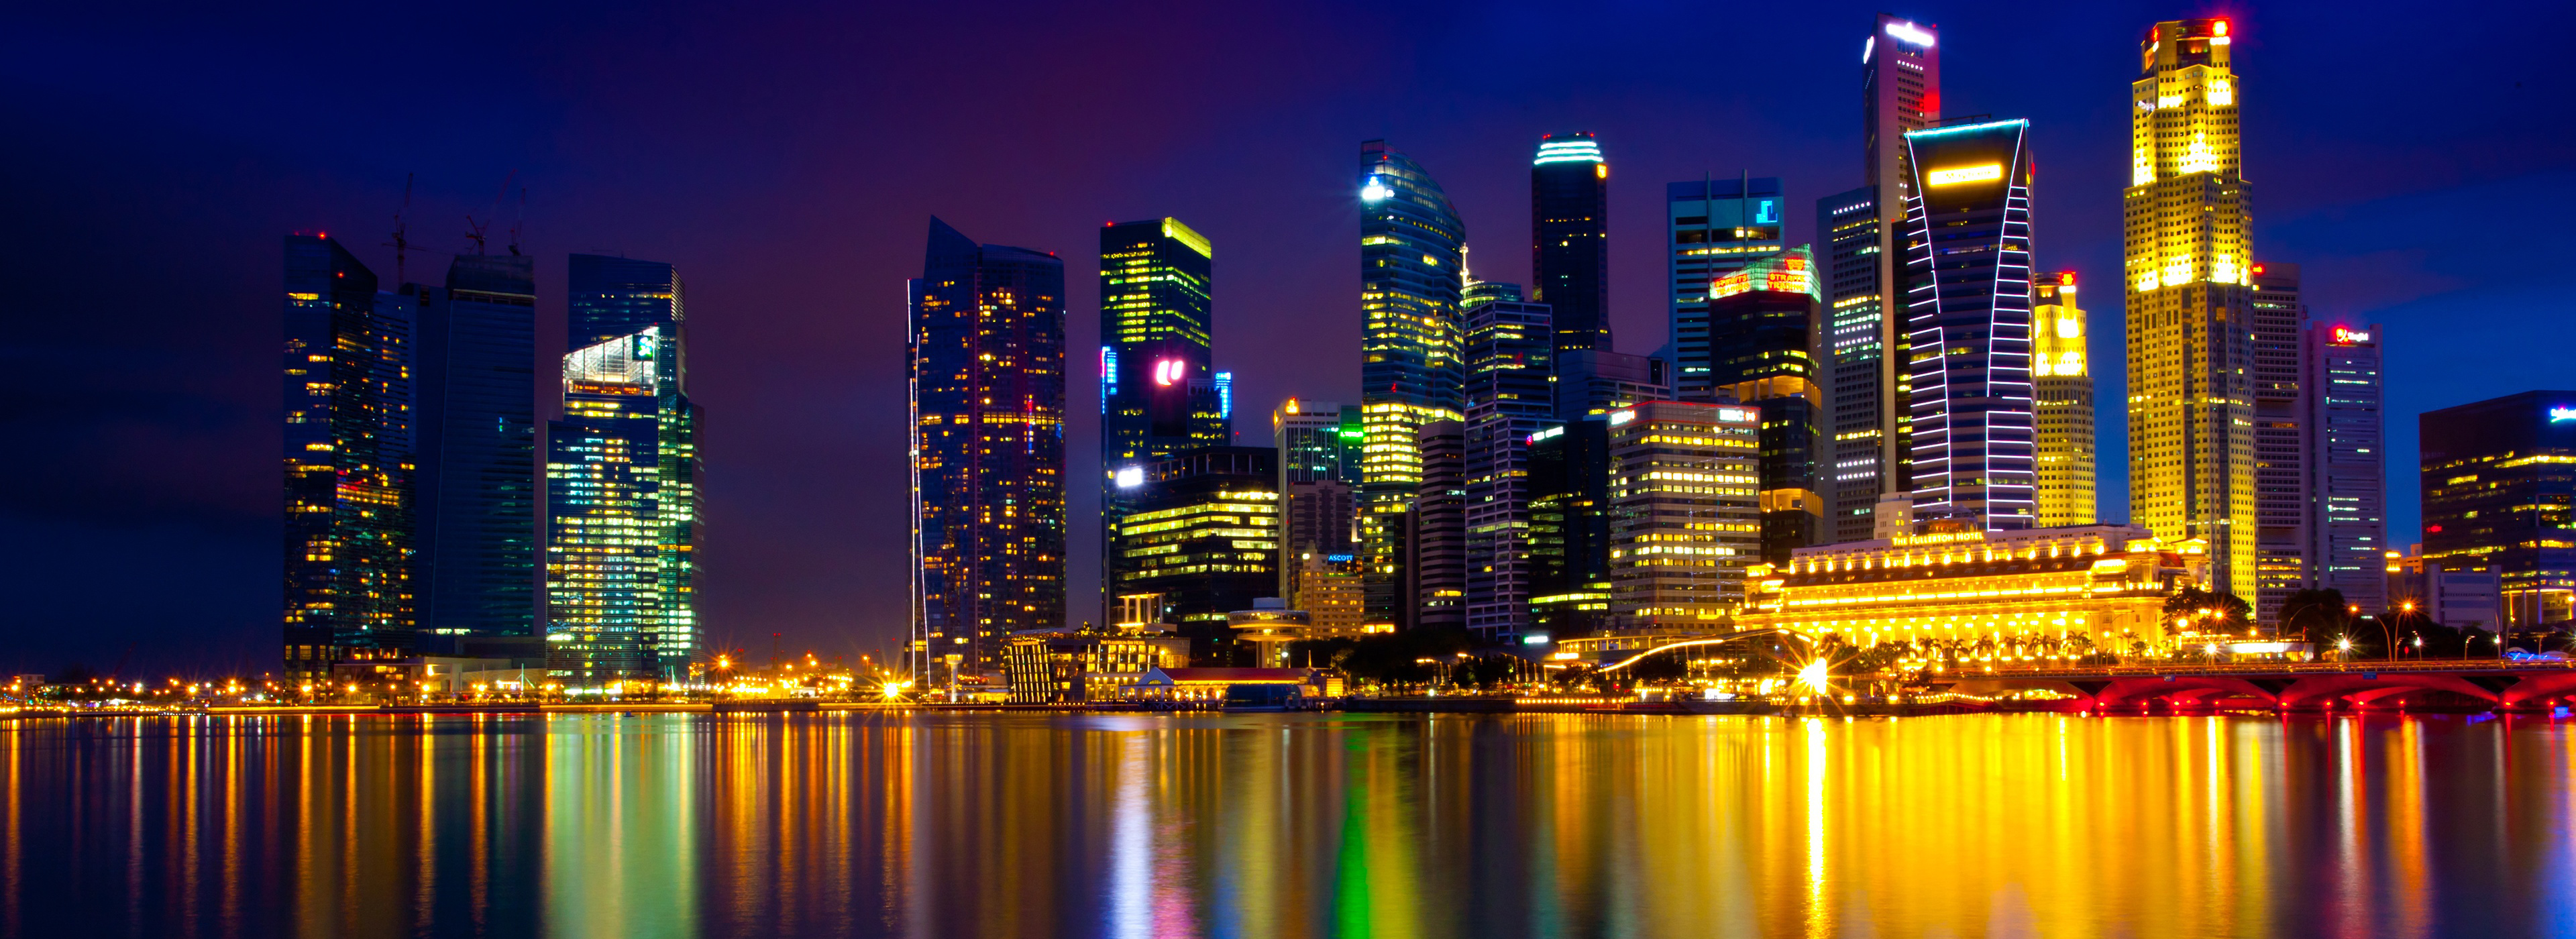 marina_bay_singapore_2-wallpaper-3840x1600